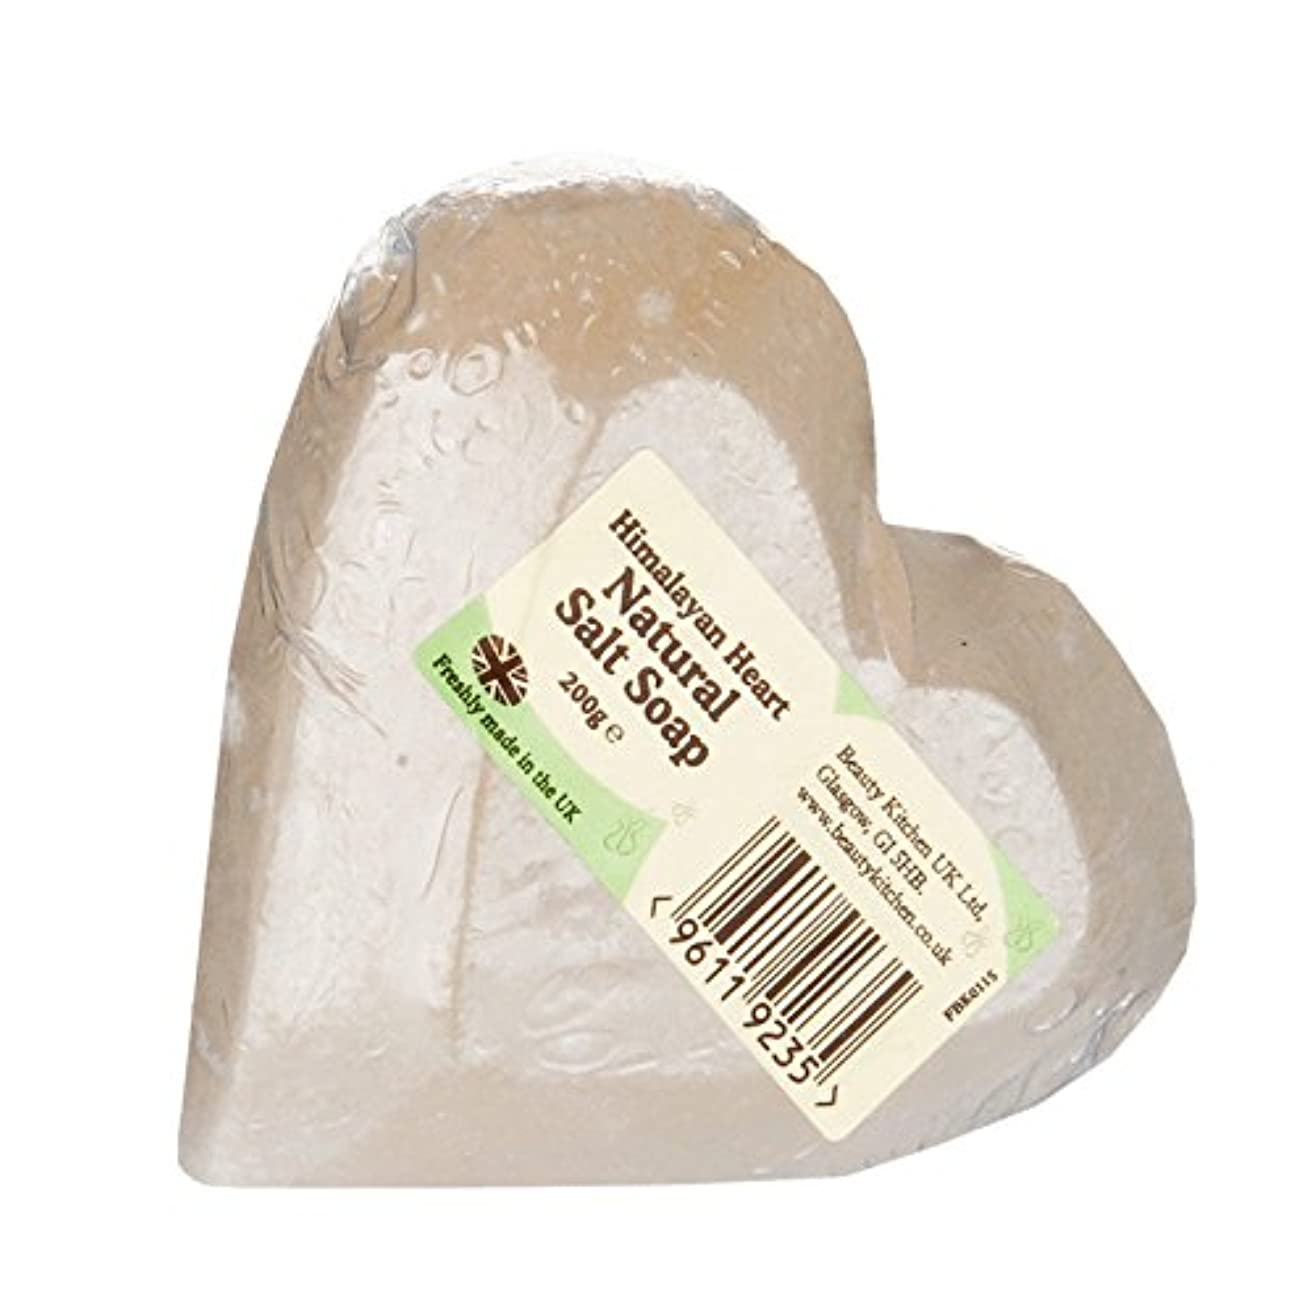 Beauty Kitchen Himalayan Heart Soap 200g (Pack of 2) - 美容キッチンヒマラヤンハートソープ200グラム (x2) [並行輸入品]